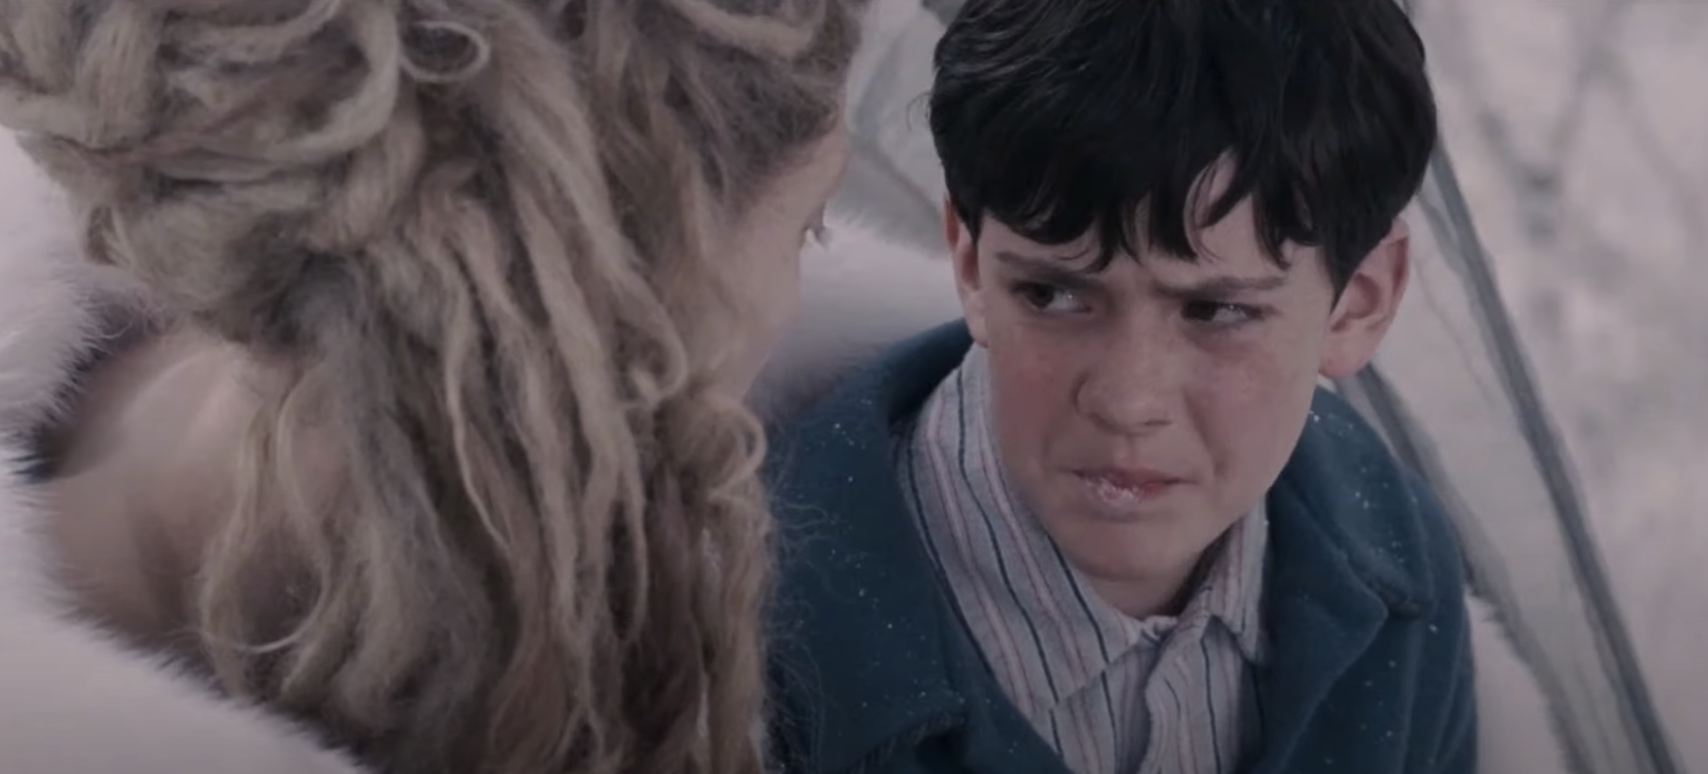 Edmund talking to the White Witch in the carriage